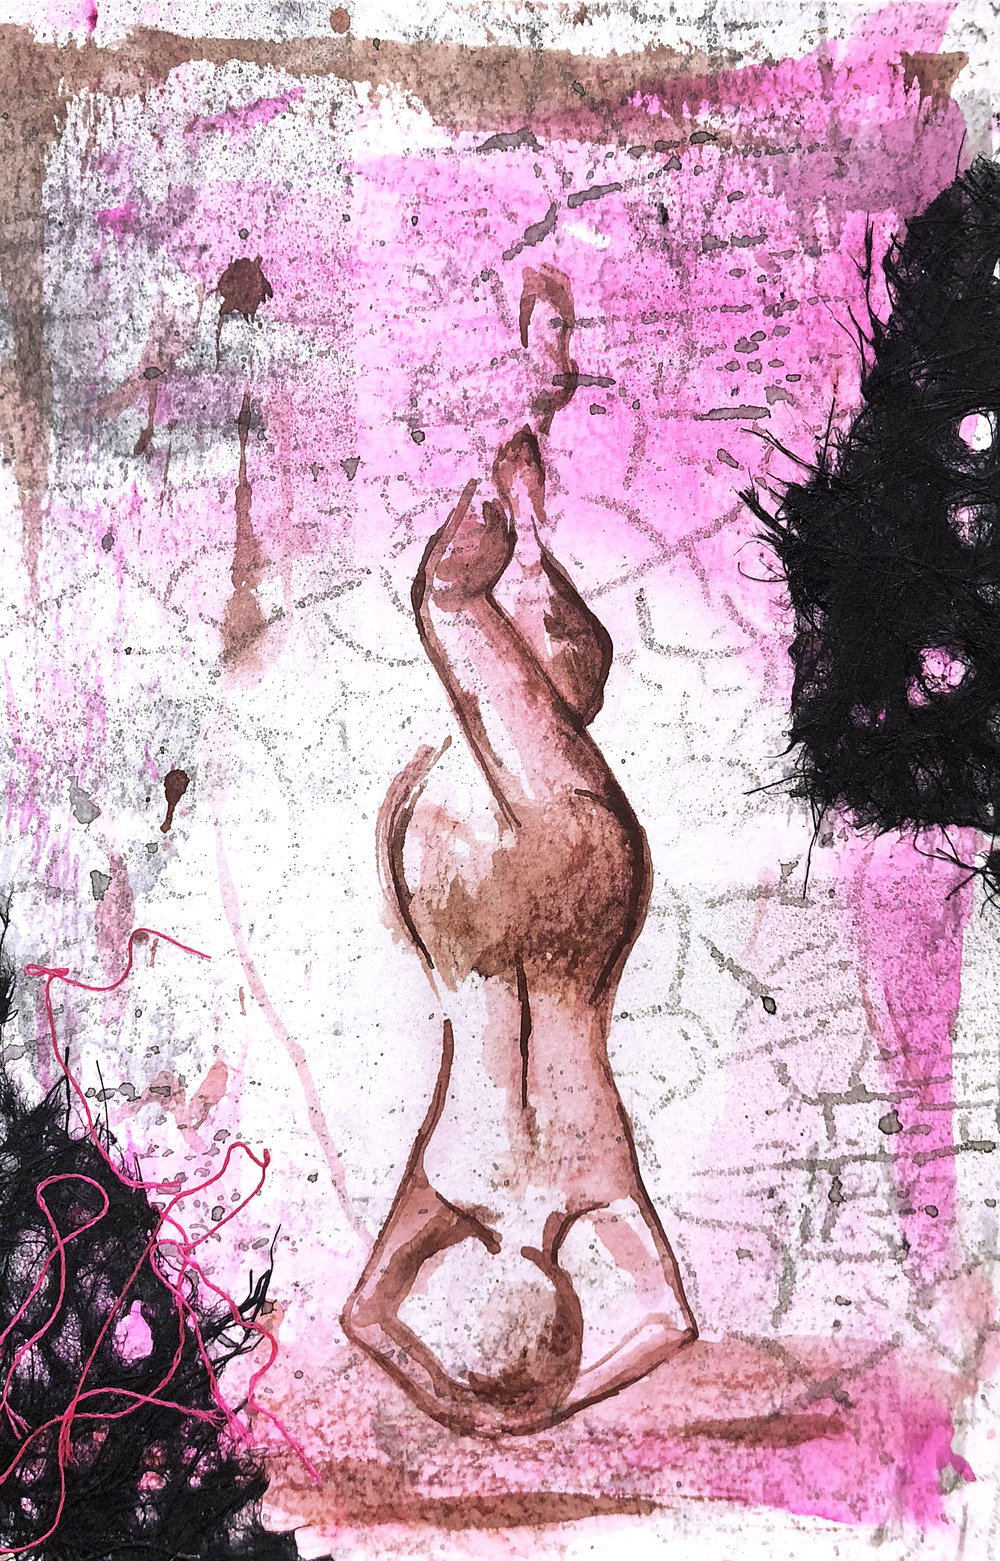 Watercolor on paper, painted with palette knives, yoga pose pincha mayurasana or forearm stand.